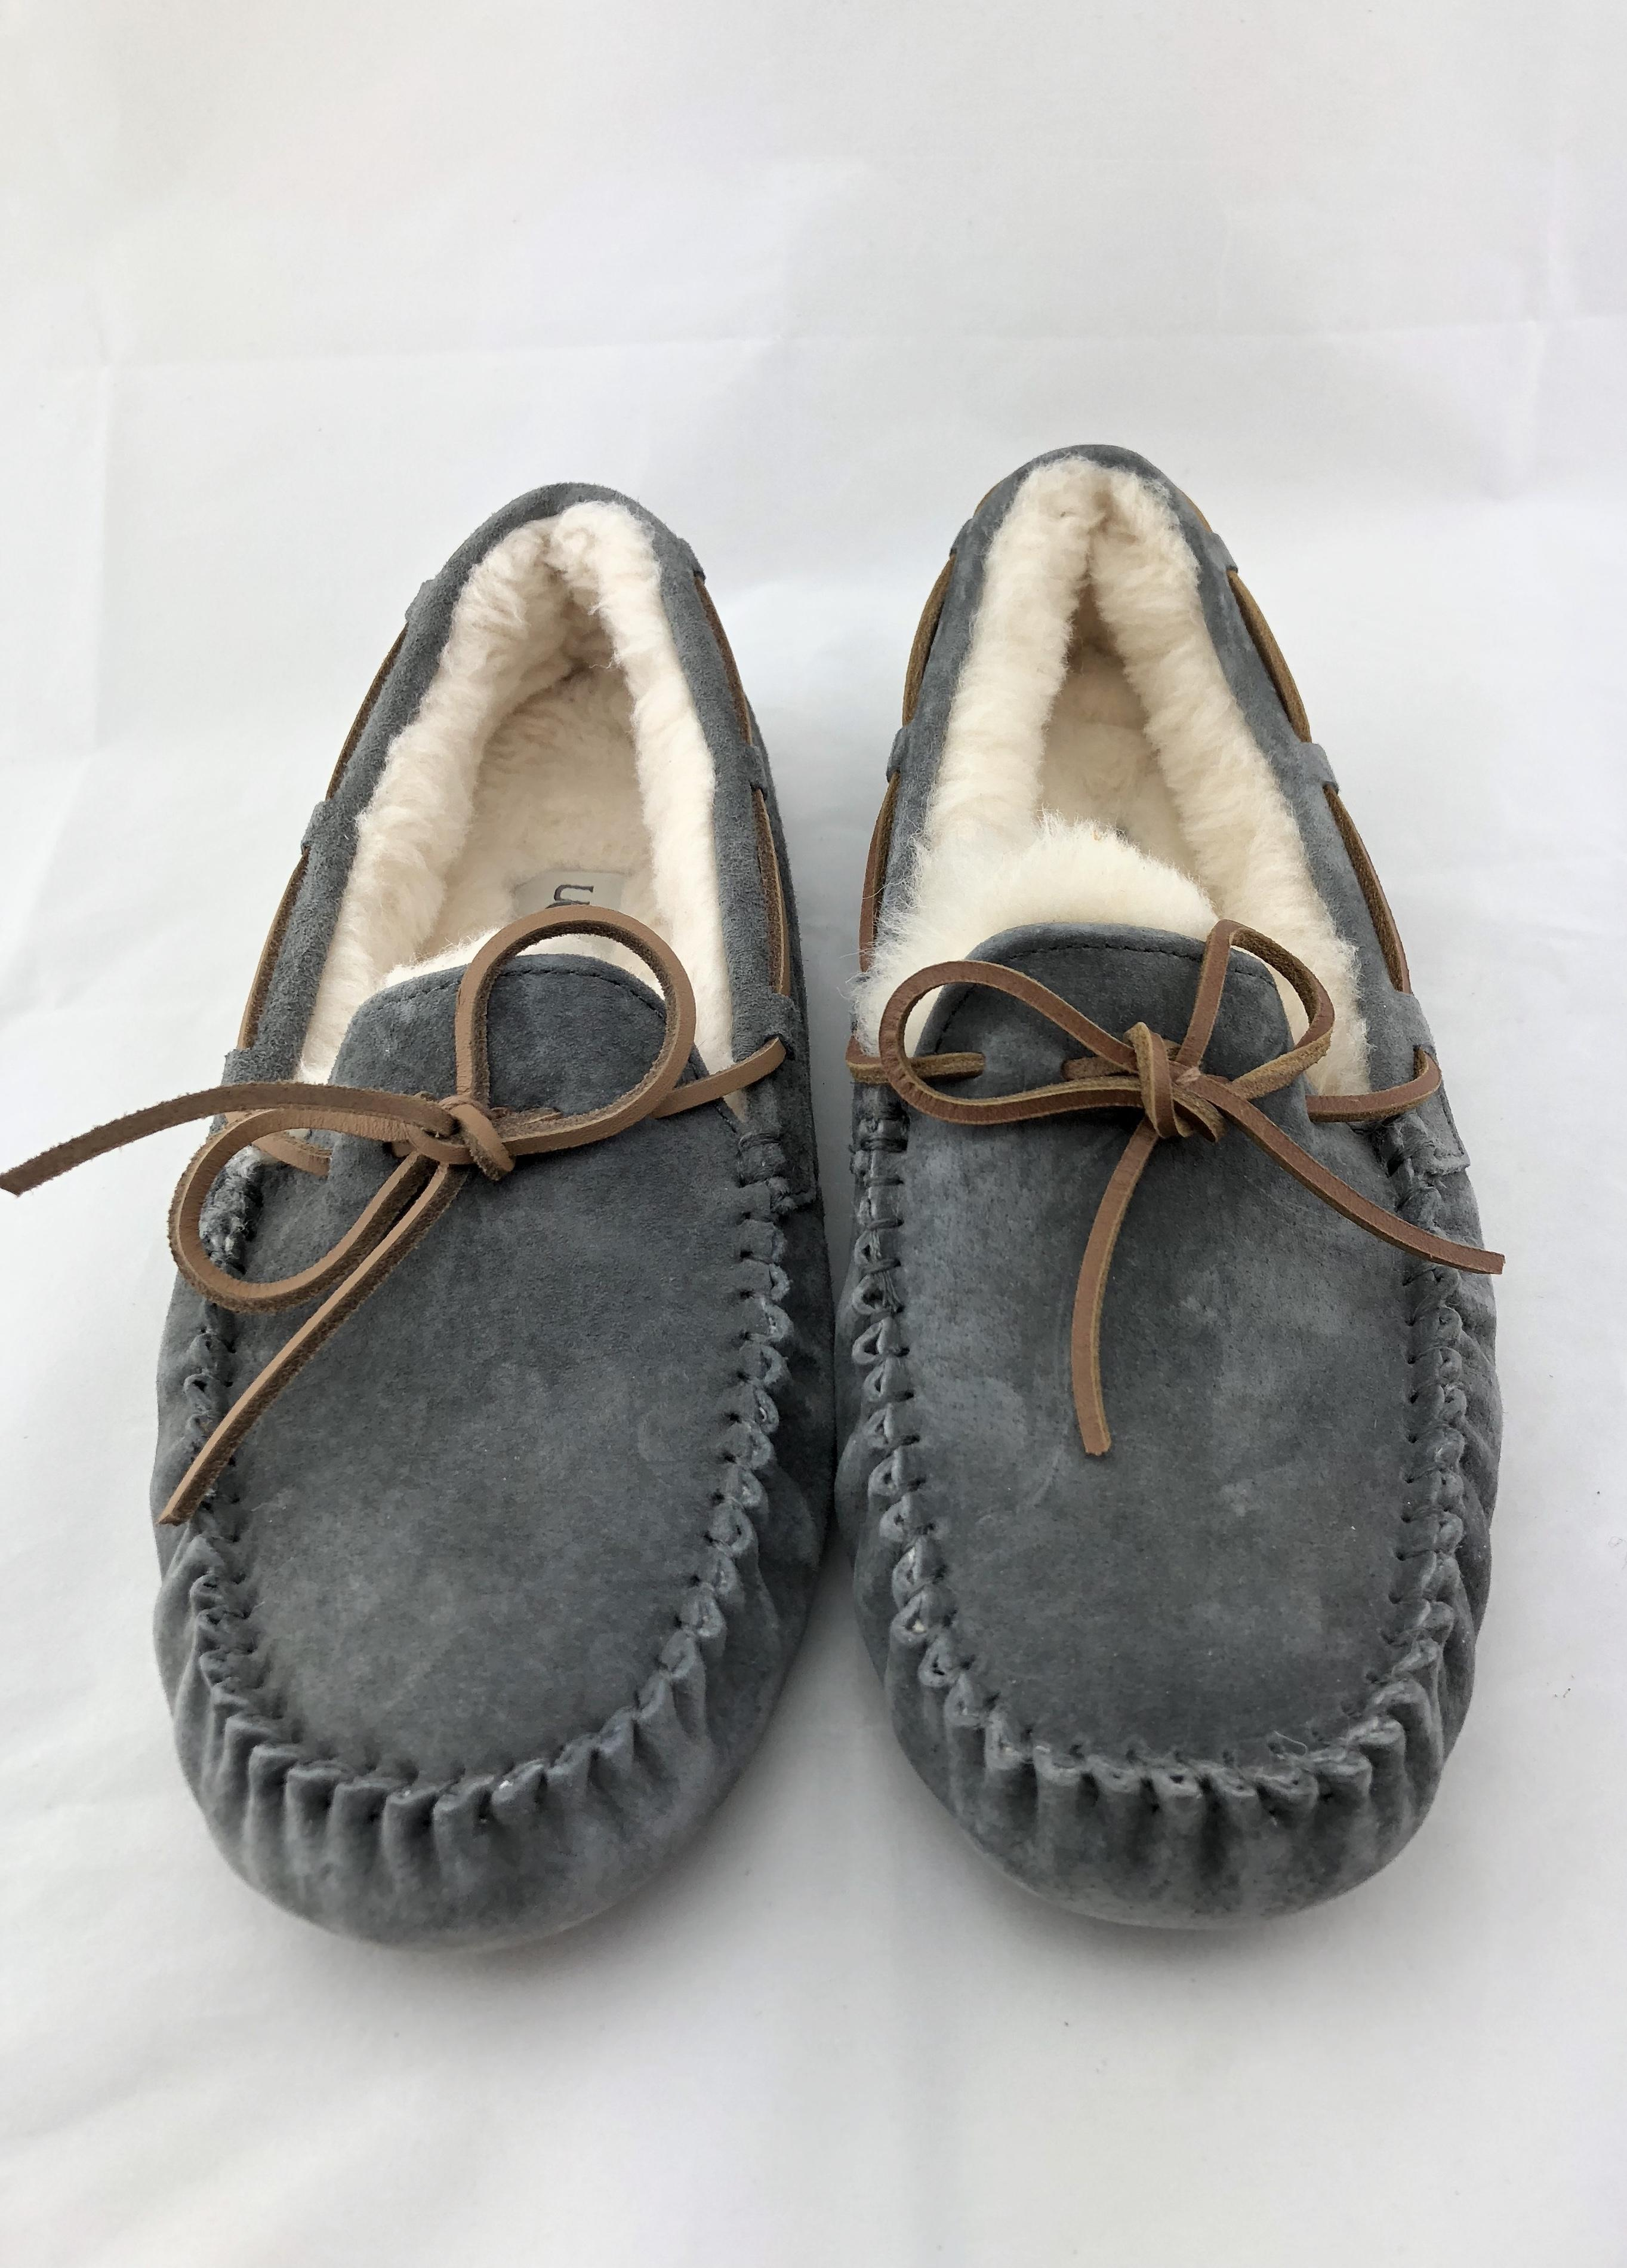 ... UGG Australia Moccasins Slipper House Rubber Sole Suede Gray Boots